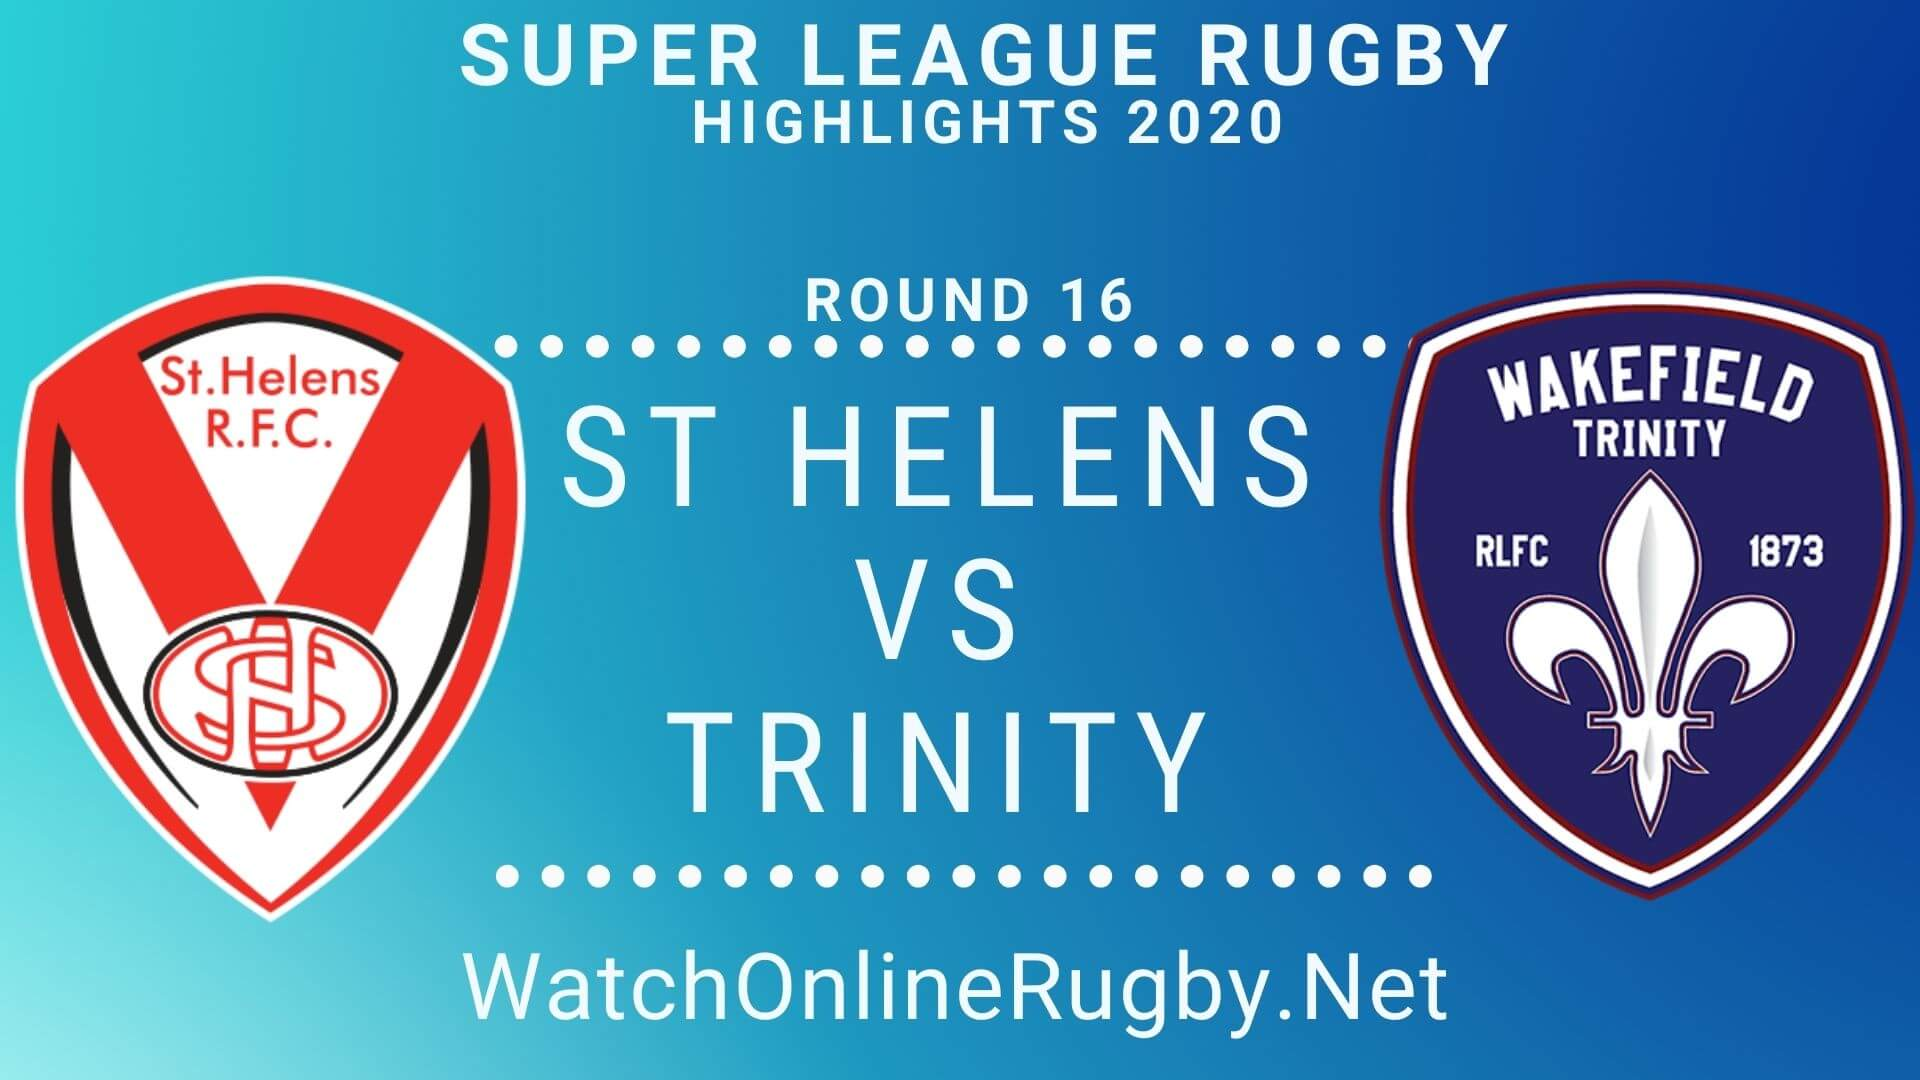 ST Helens vs Wakefield Trinity Highlights 2020